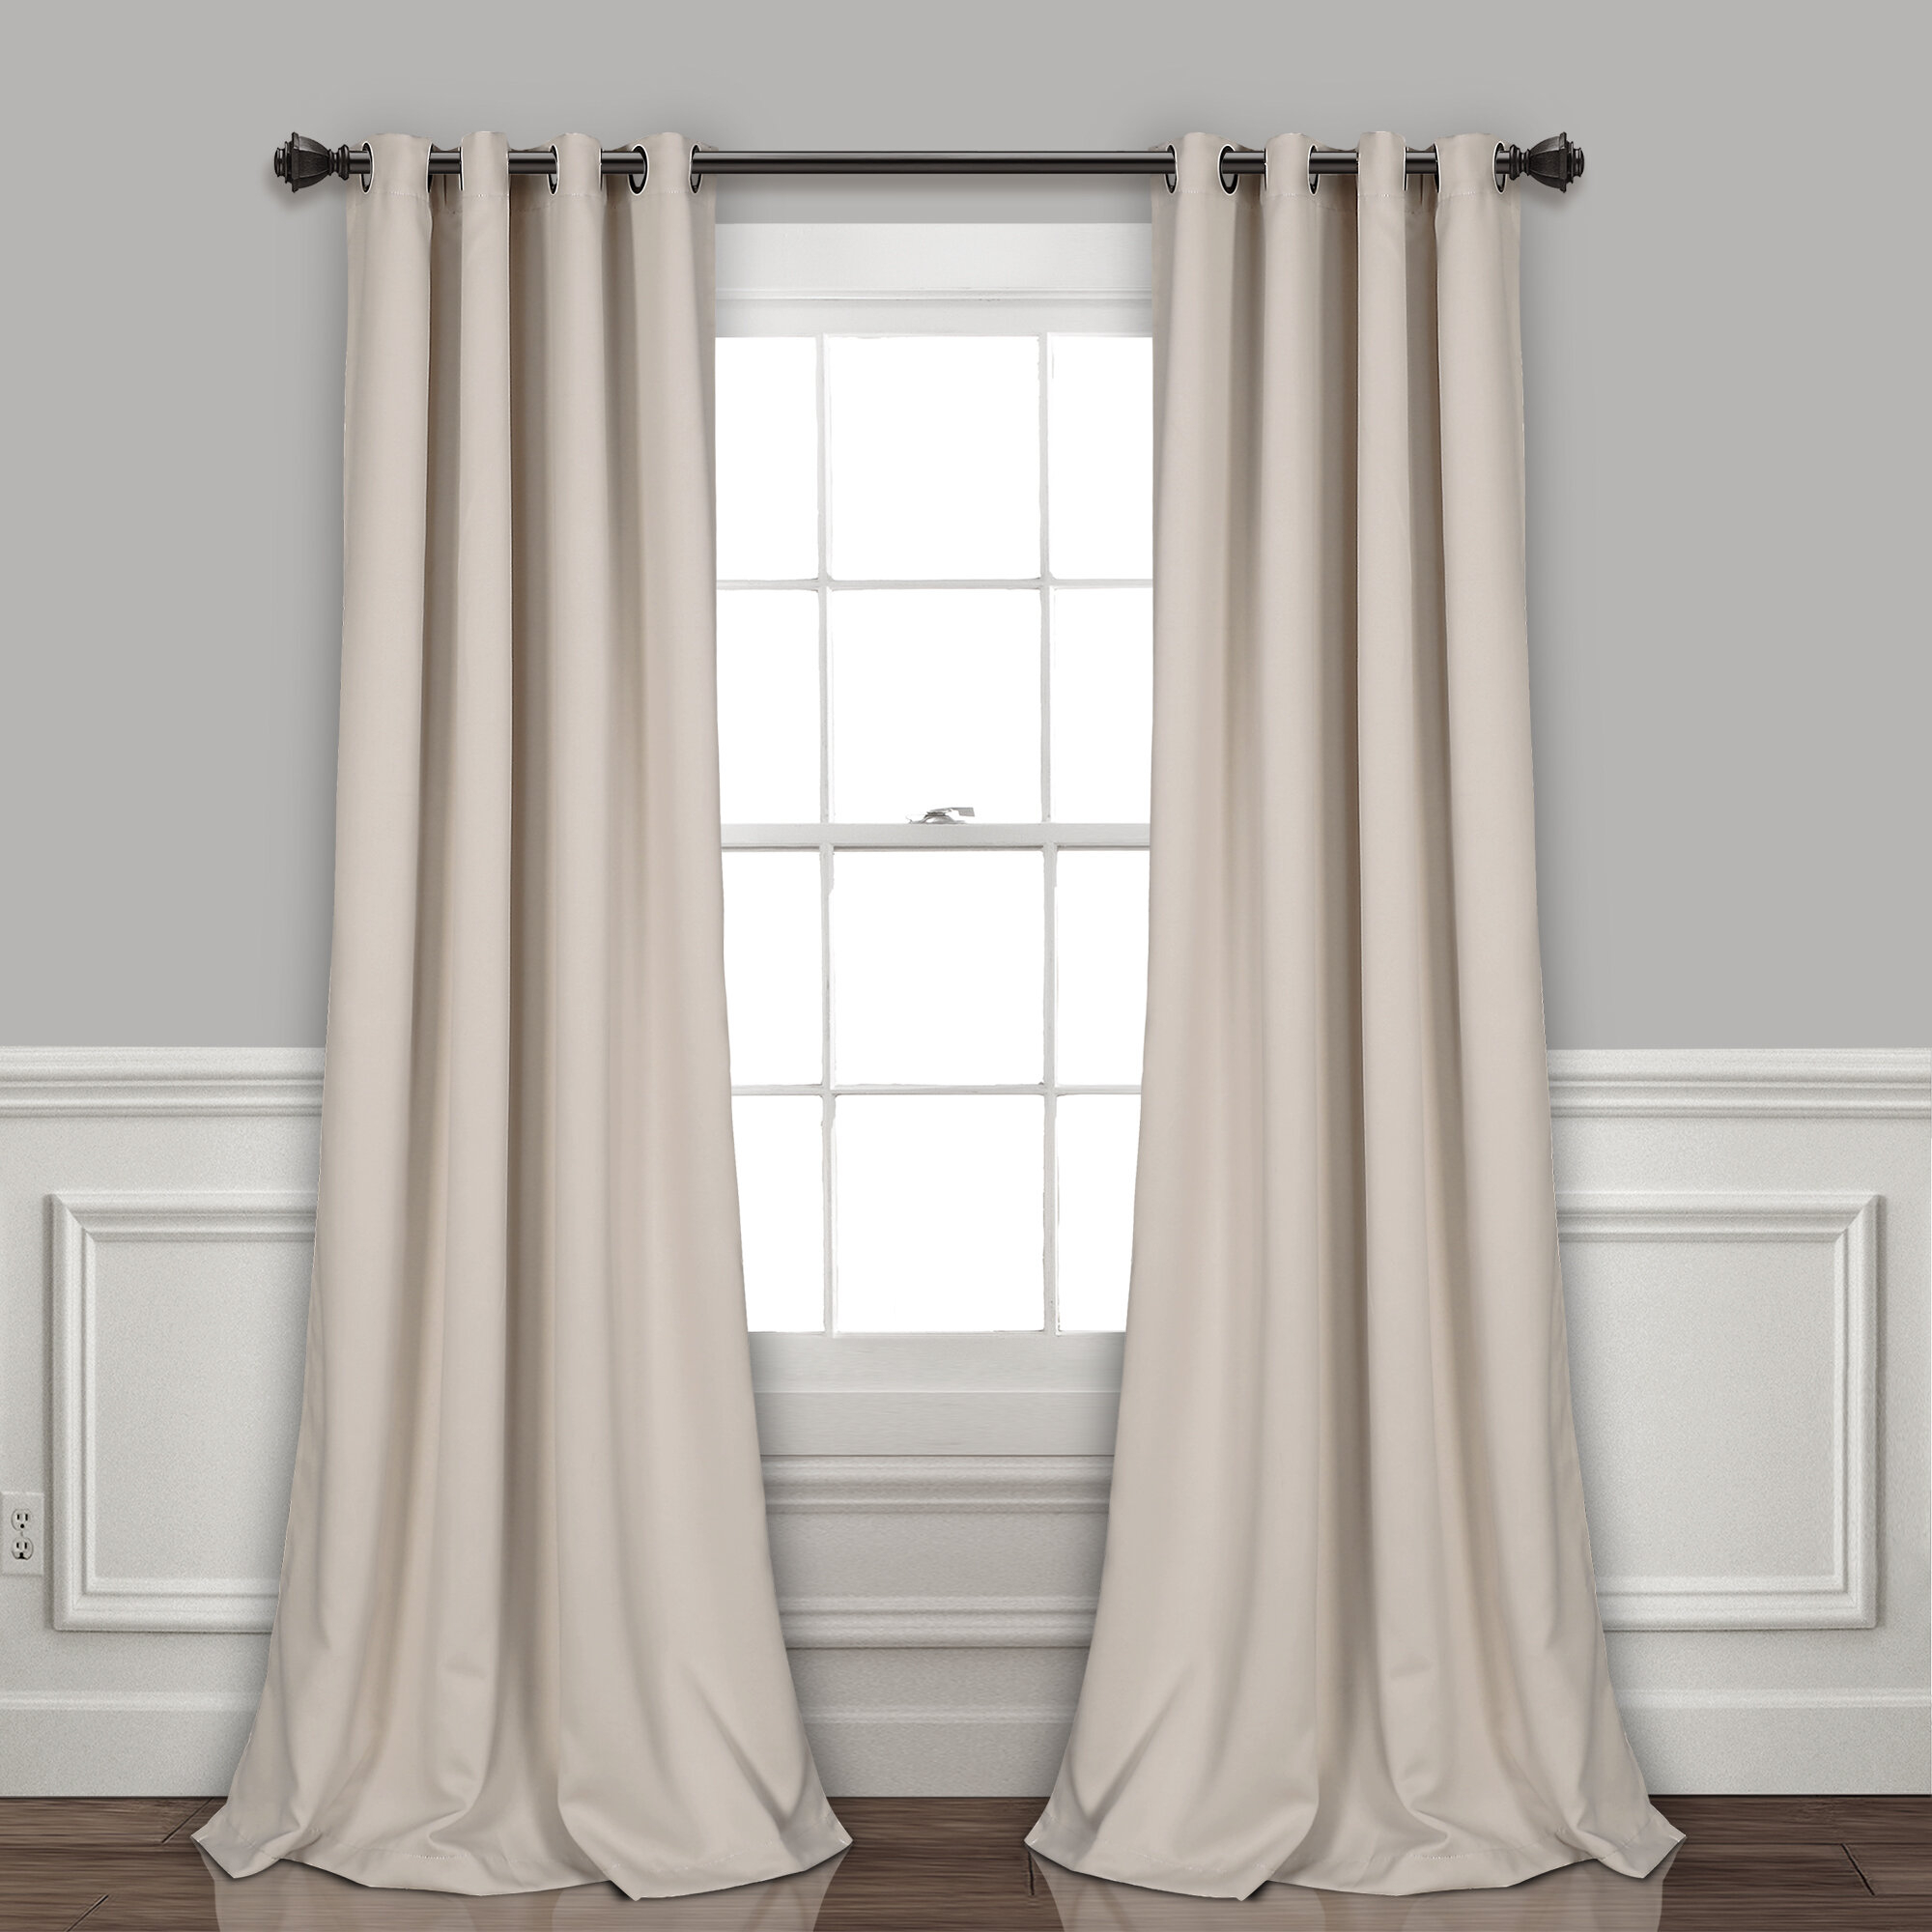 Ketterman Solid Thermal Blackout Grommet Window Panel Pair Pertaining To Insulated Blackout Grommet Window Curtain Panel Pairs (View 13 of 20)